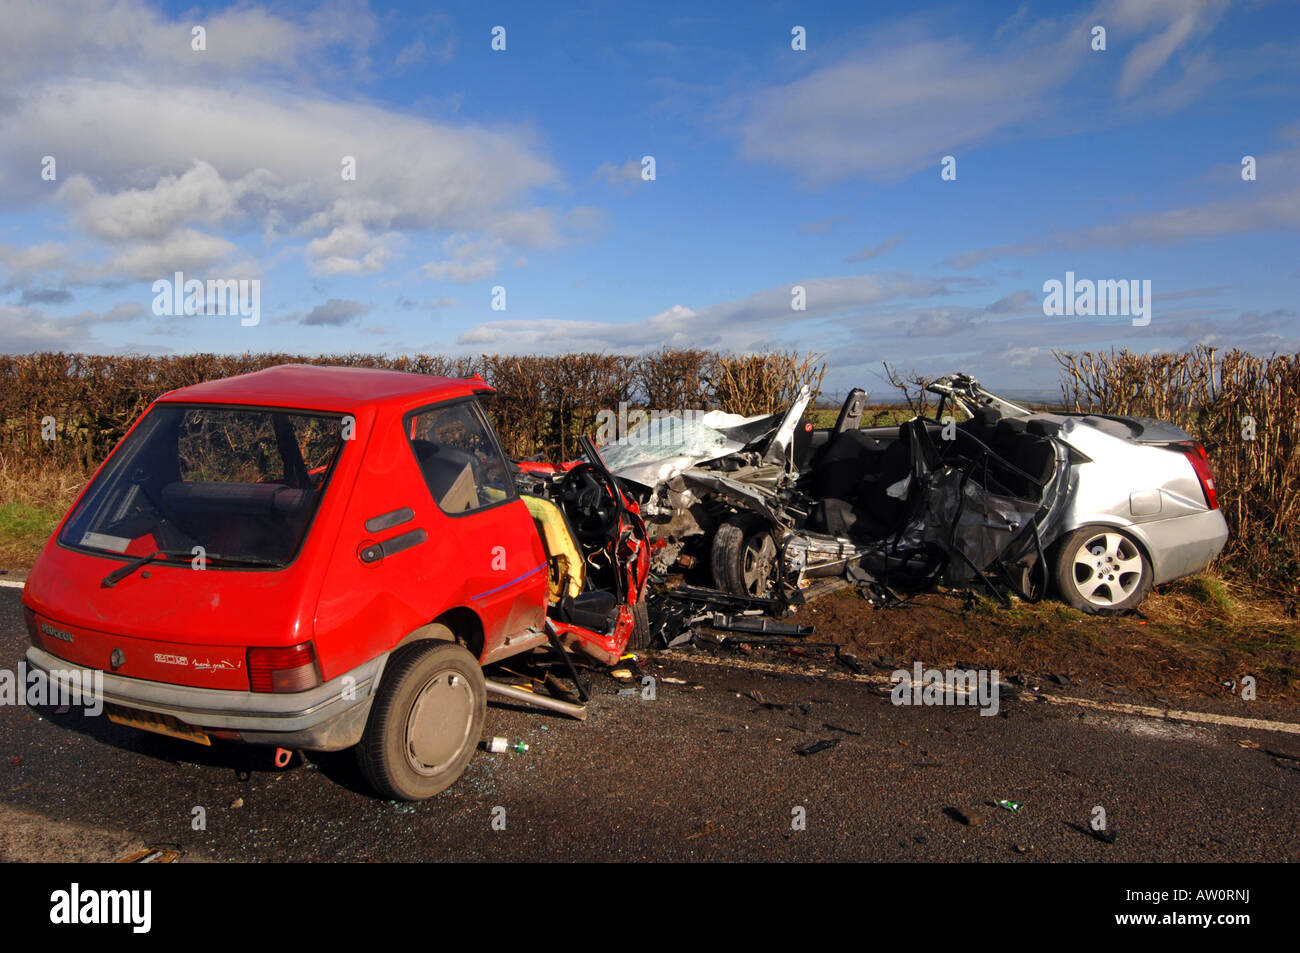 Scene of a fatal head on car crash that killed 4 people - Stock Image